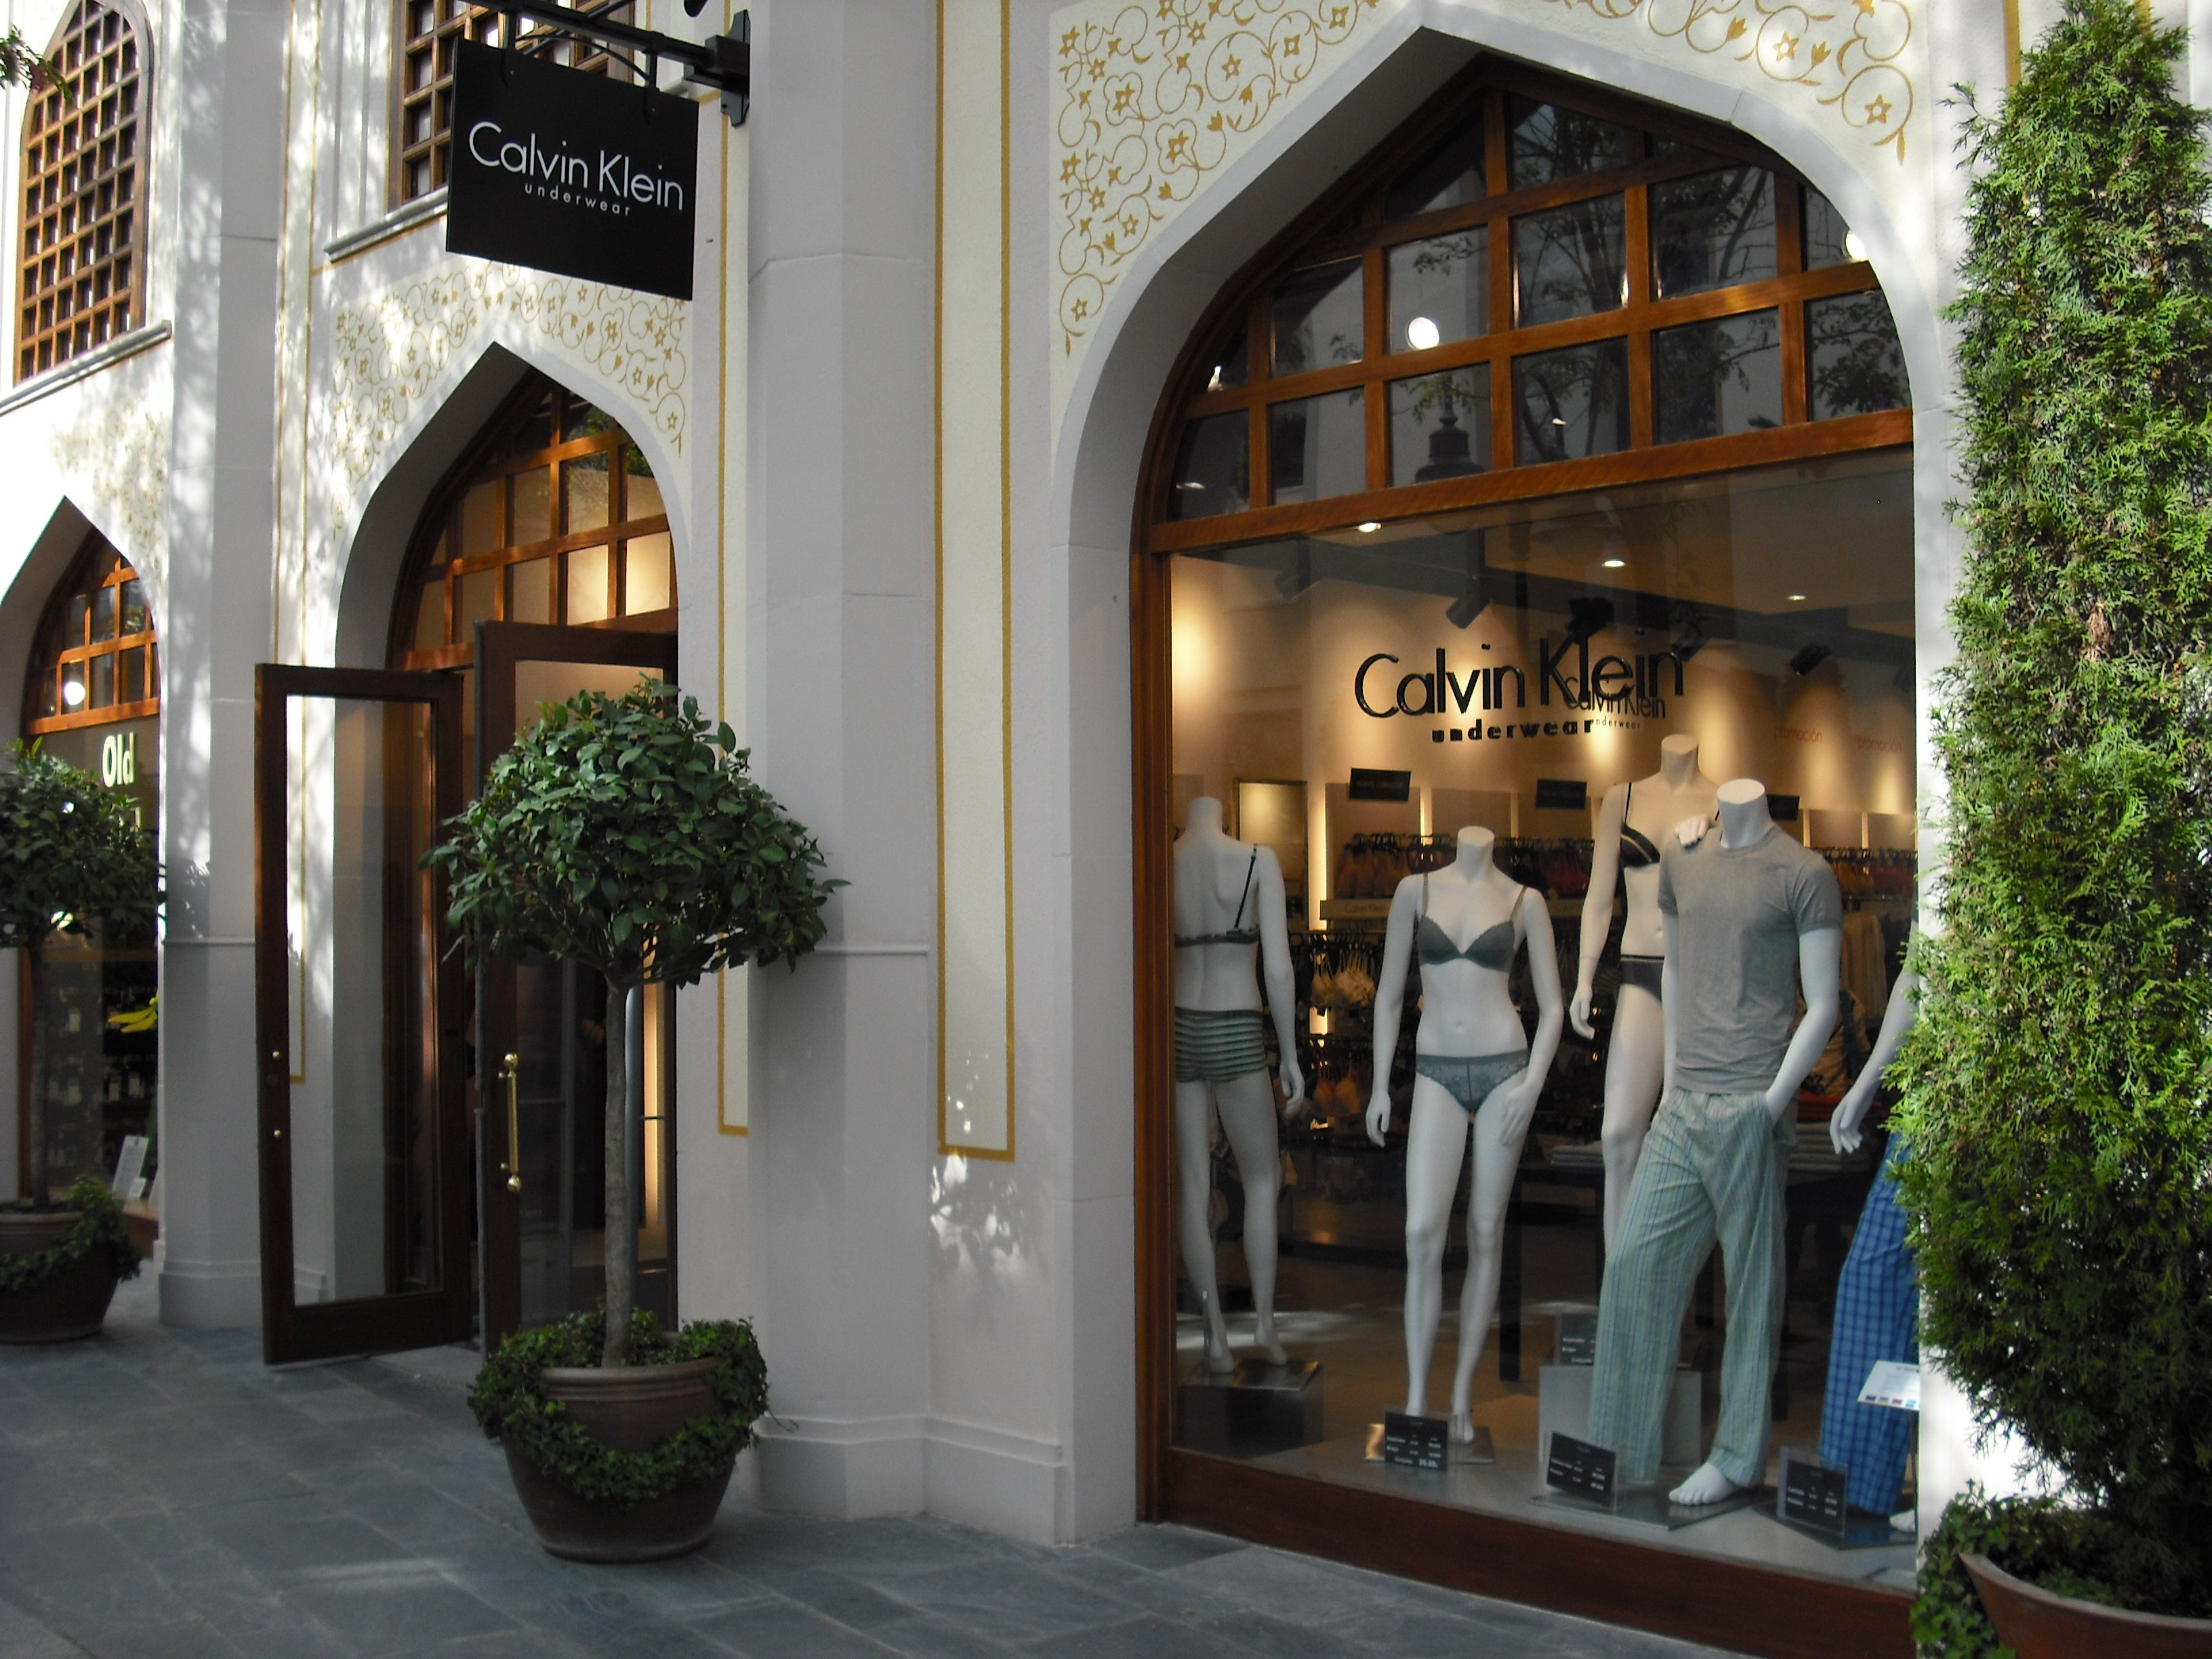 Fachada en Las Rozas Village outlet shopping